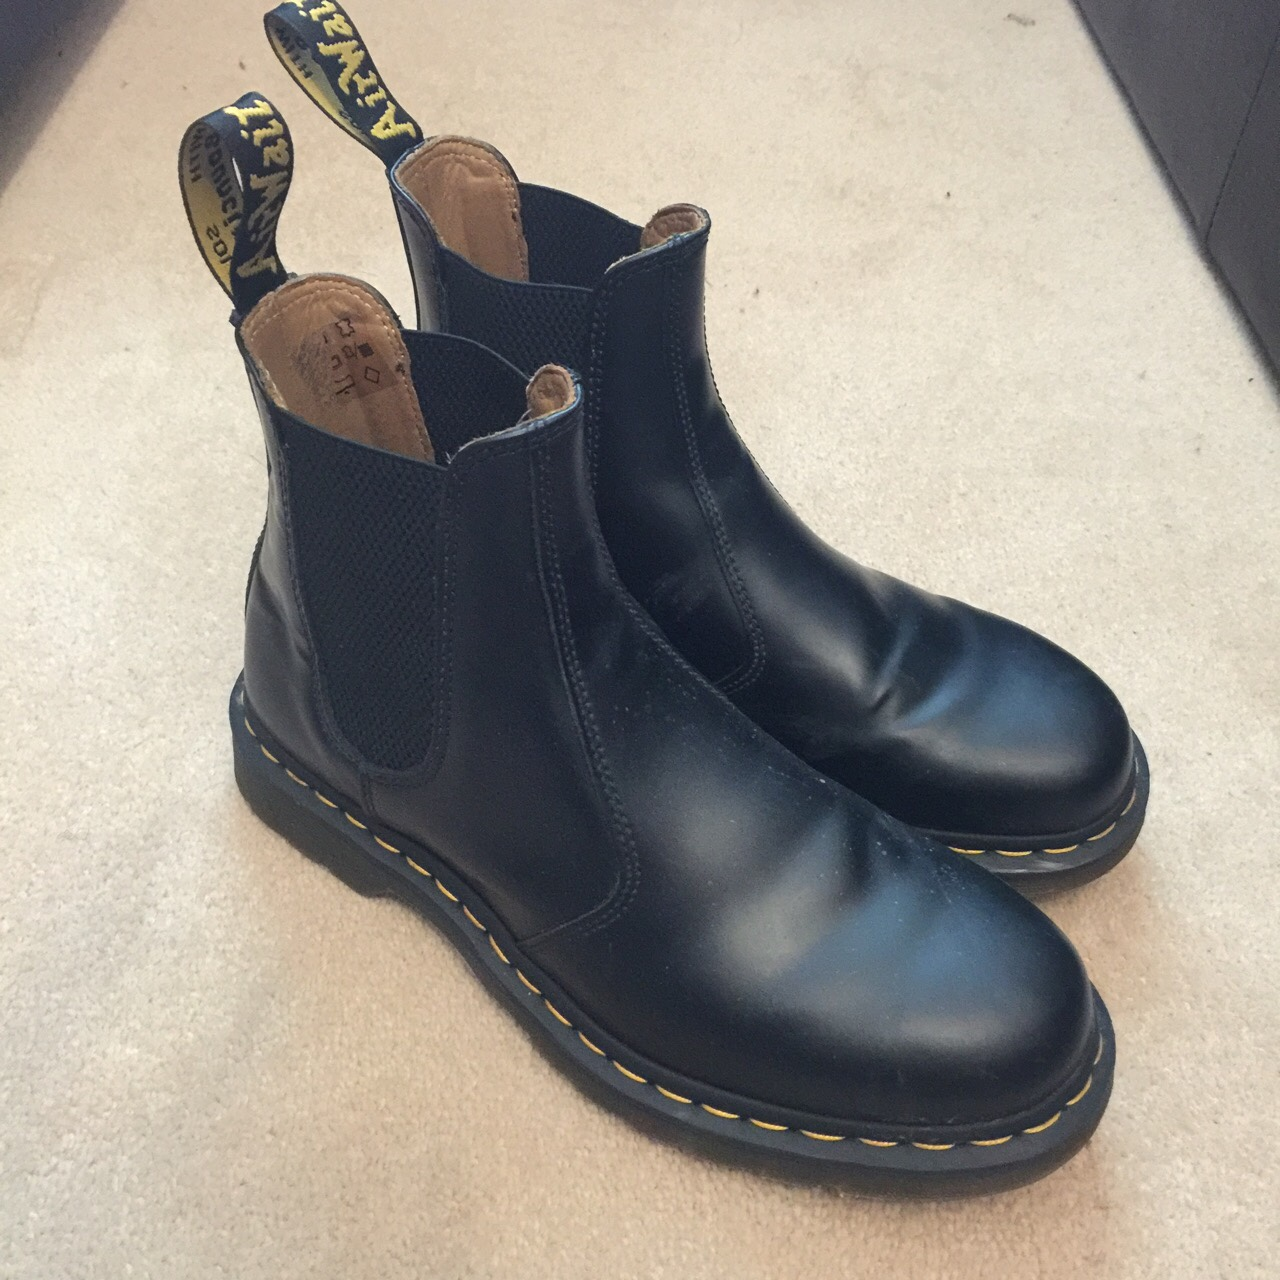 Dr martens 2976 Chelsea boot, black with yellow Depop